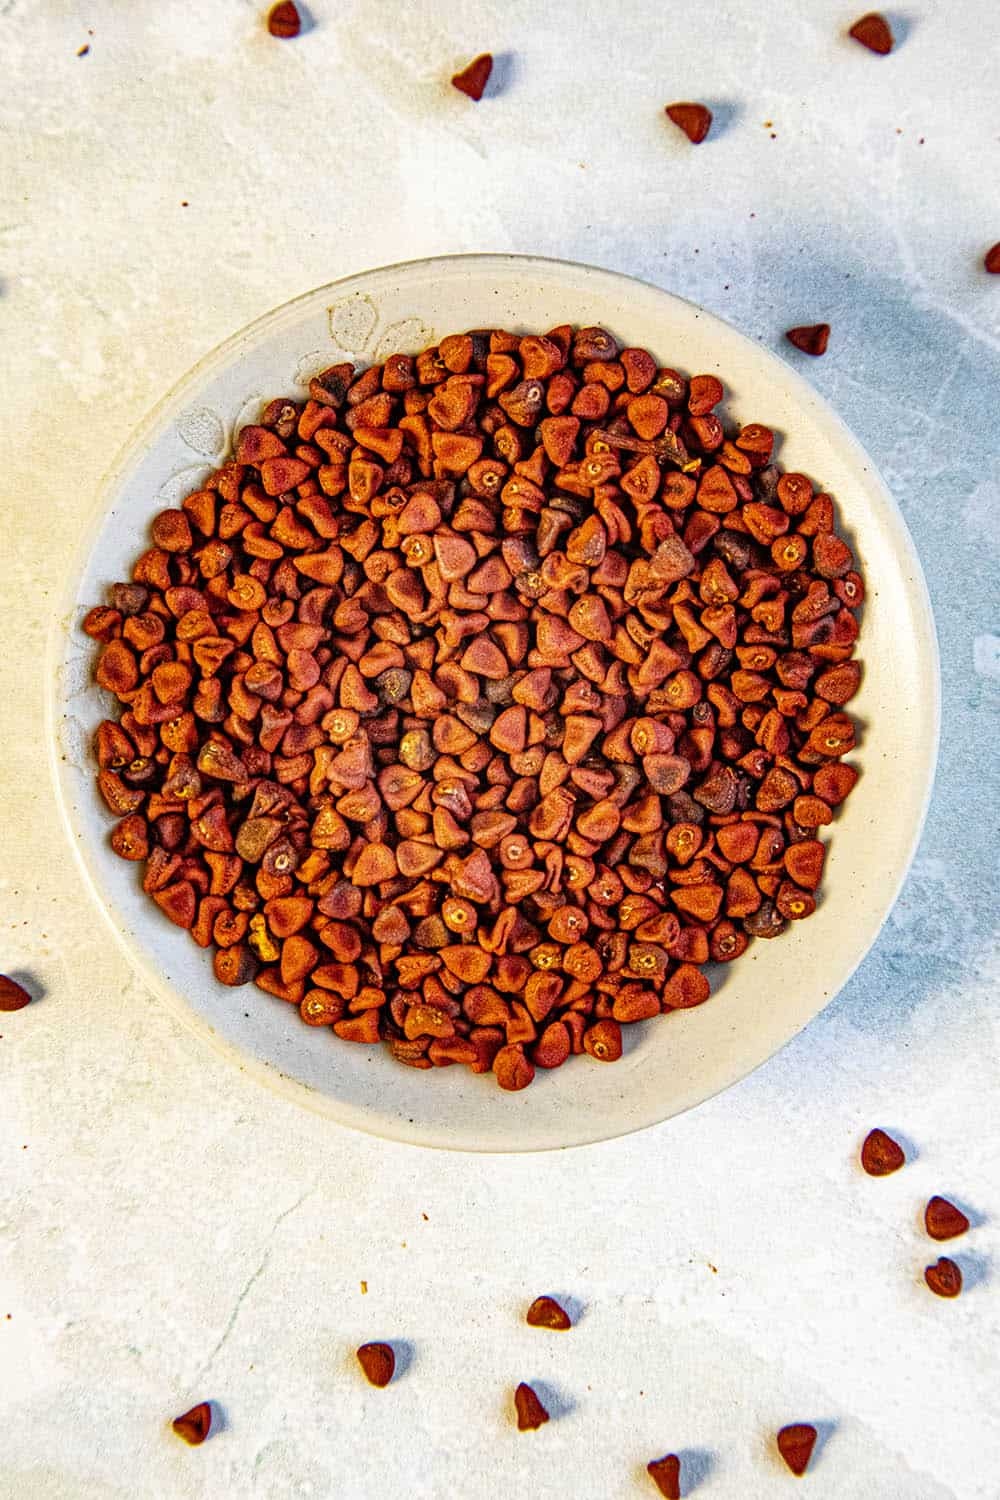 Annatto Seeds (aka Achiote) in a bowl